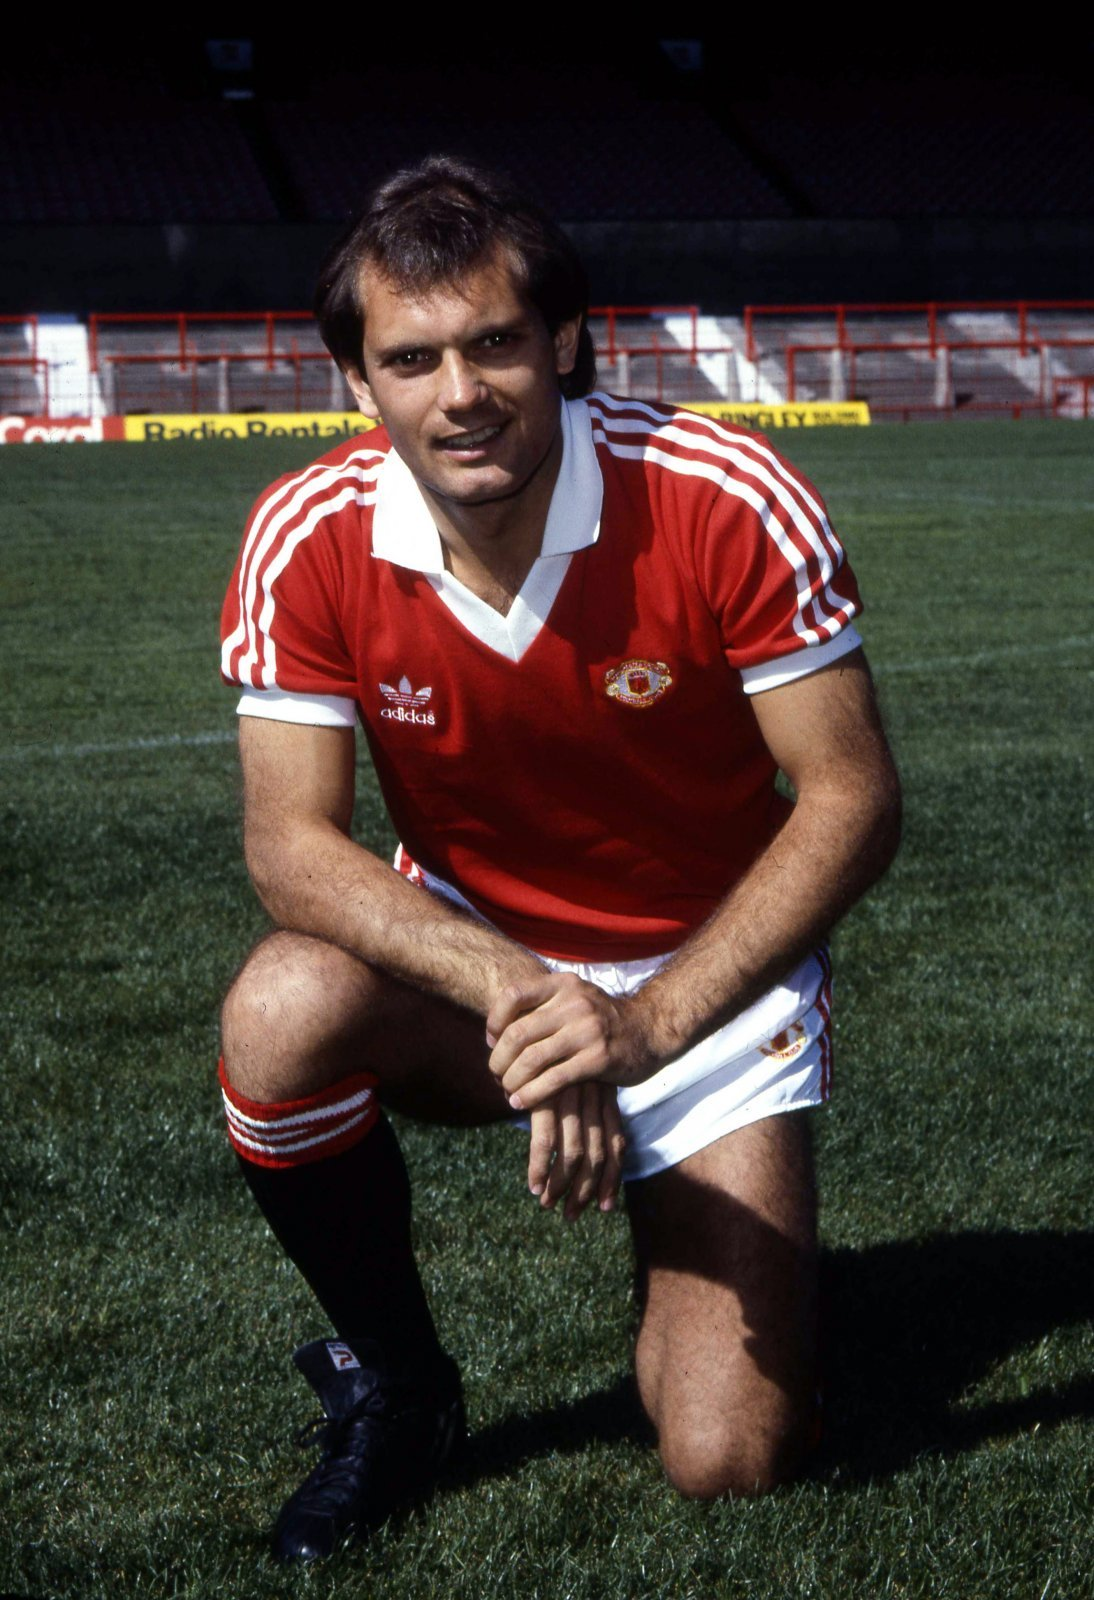 Ray Wilkins in his Manchester United kit